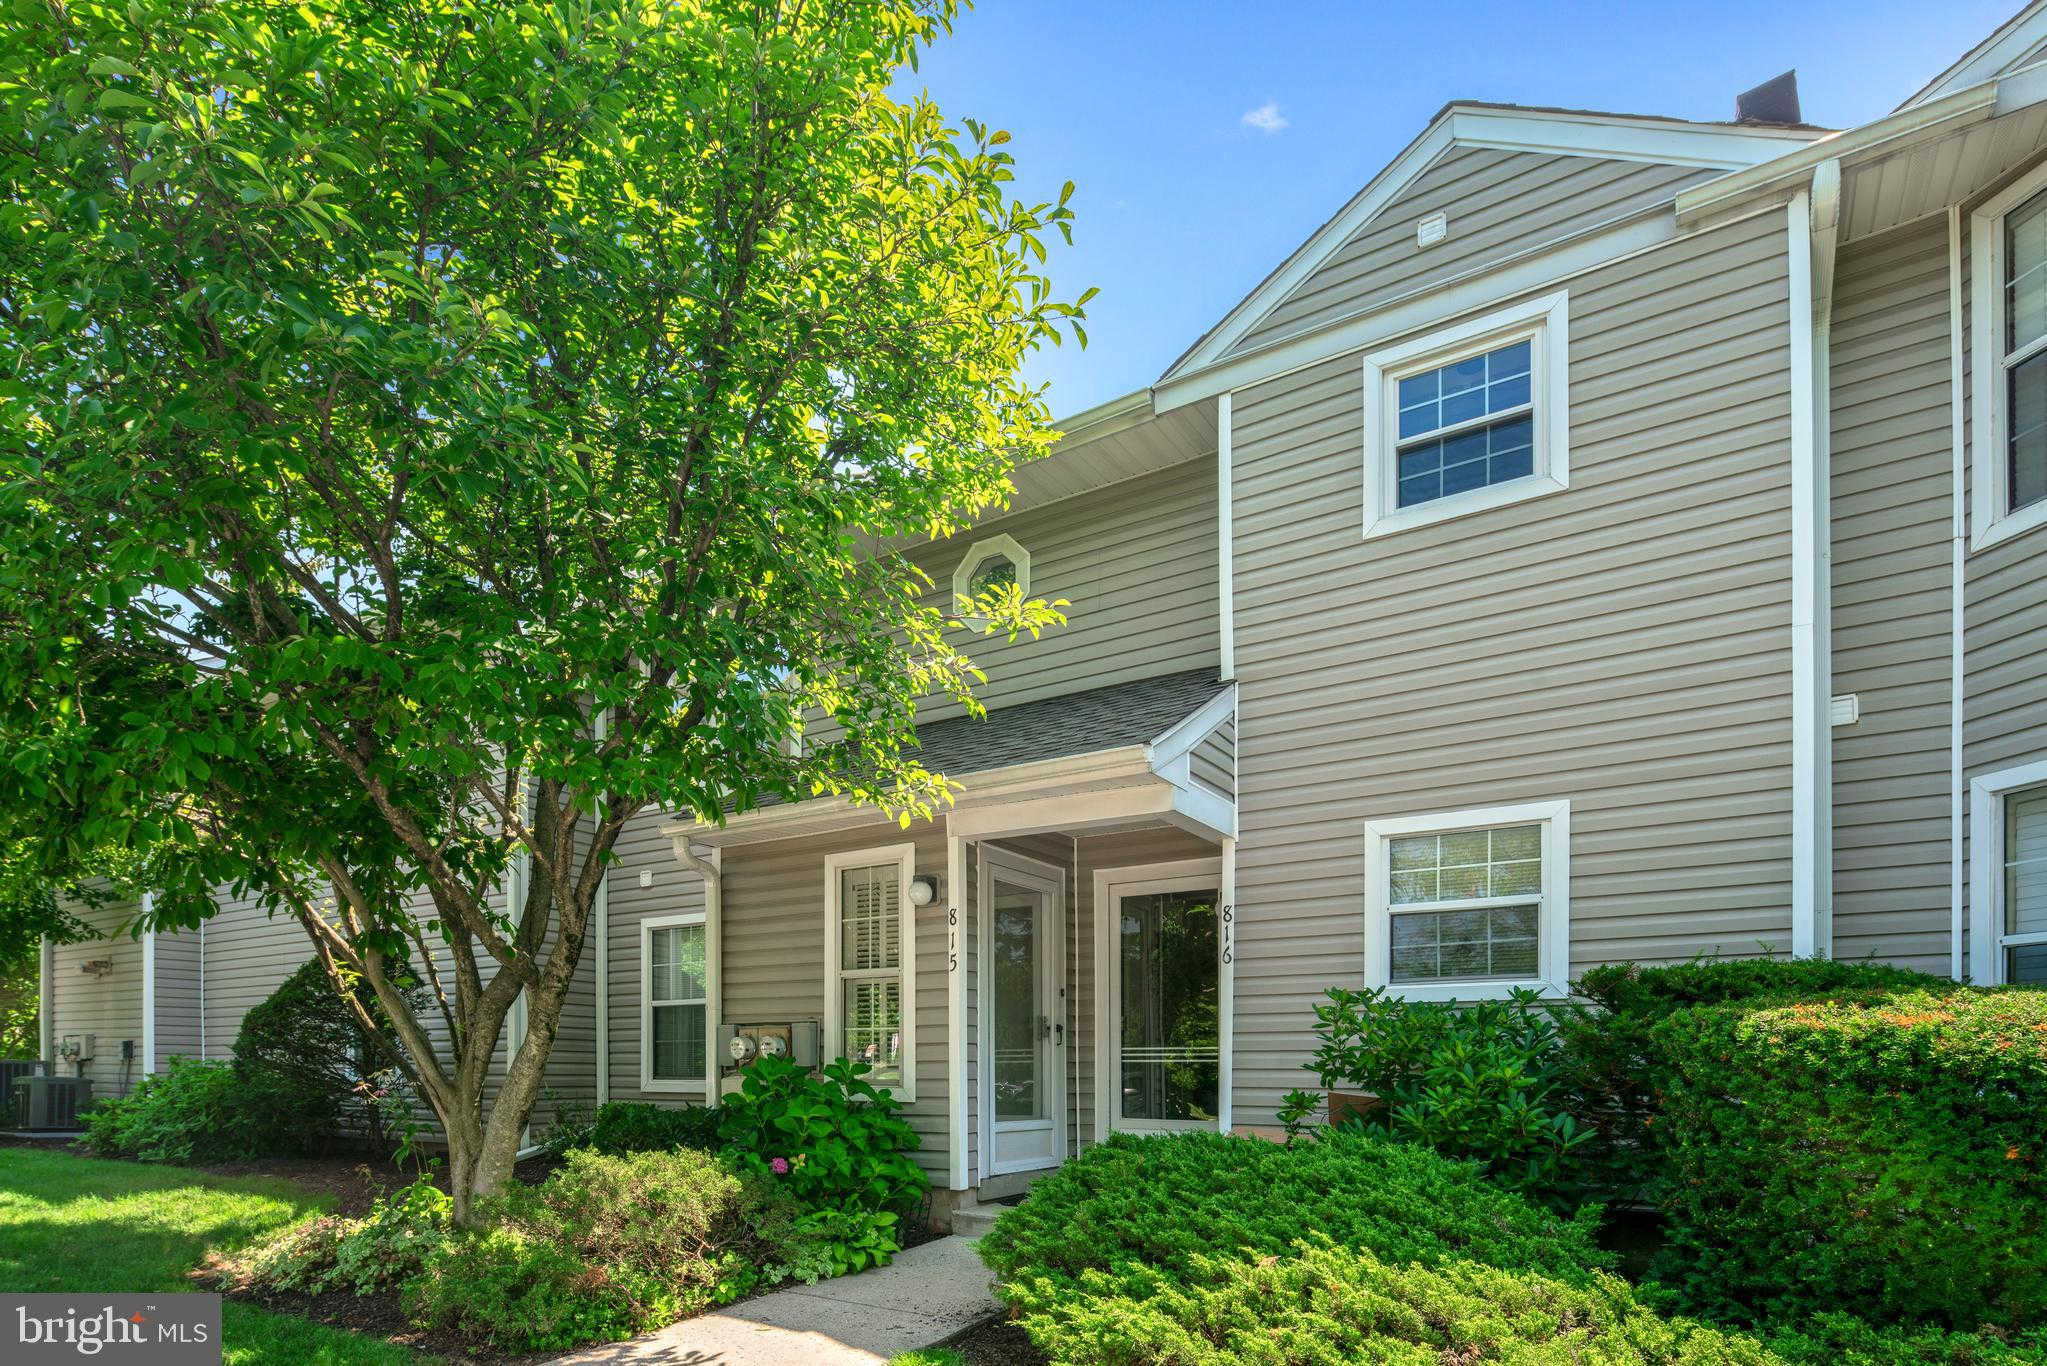 Another Property Sold - 815 Reading Court #4, West Chester, PA 19380